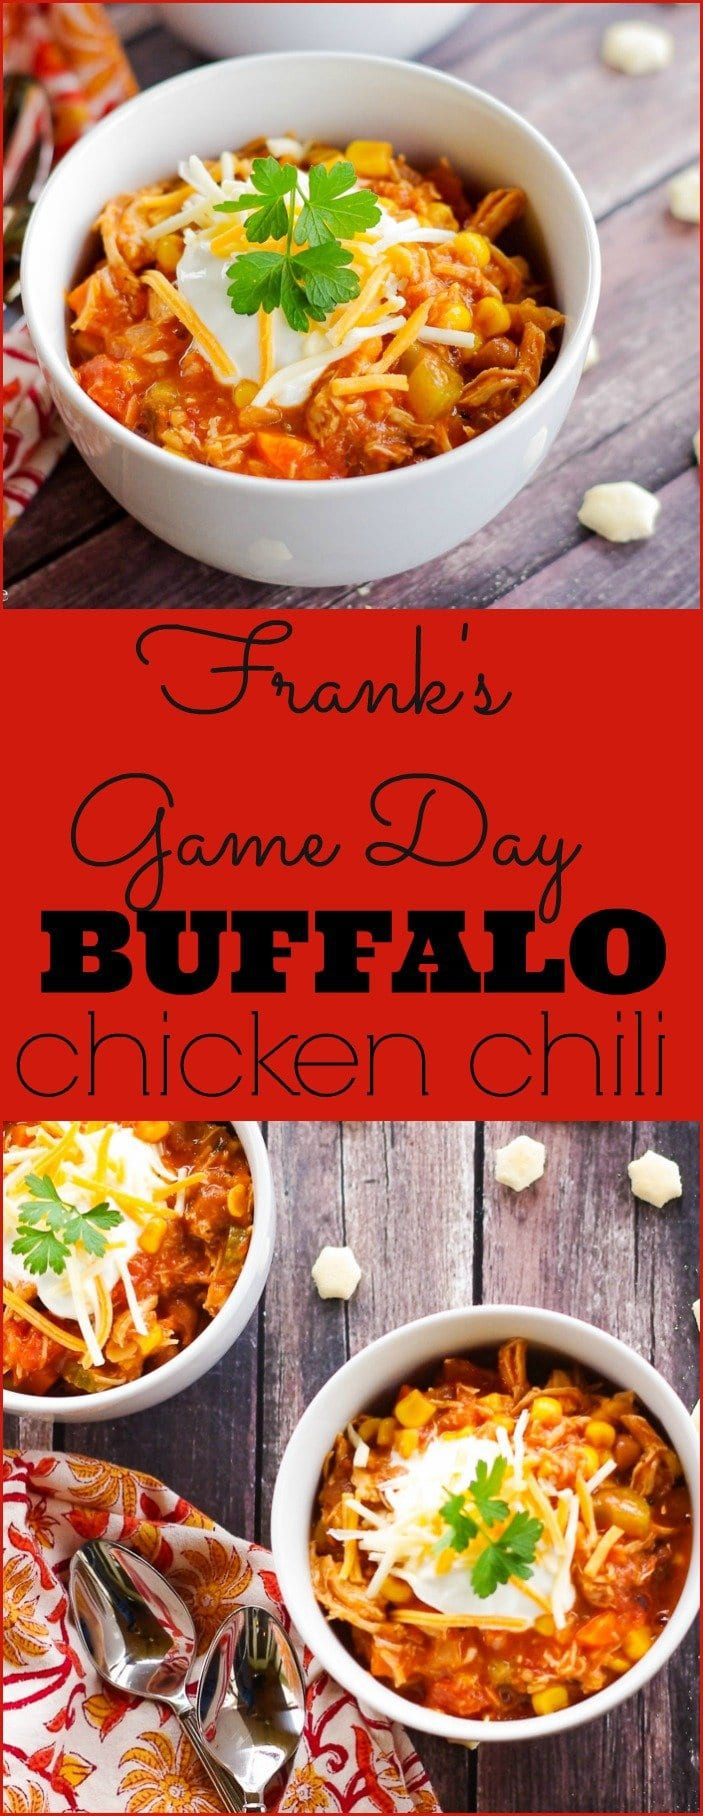 Football season is in full swing and I have the perfect recipe that combines two game day favorites in one - Frank